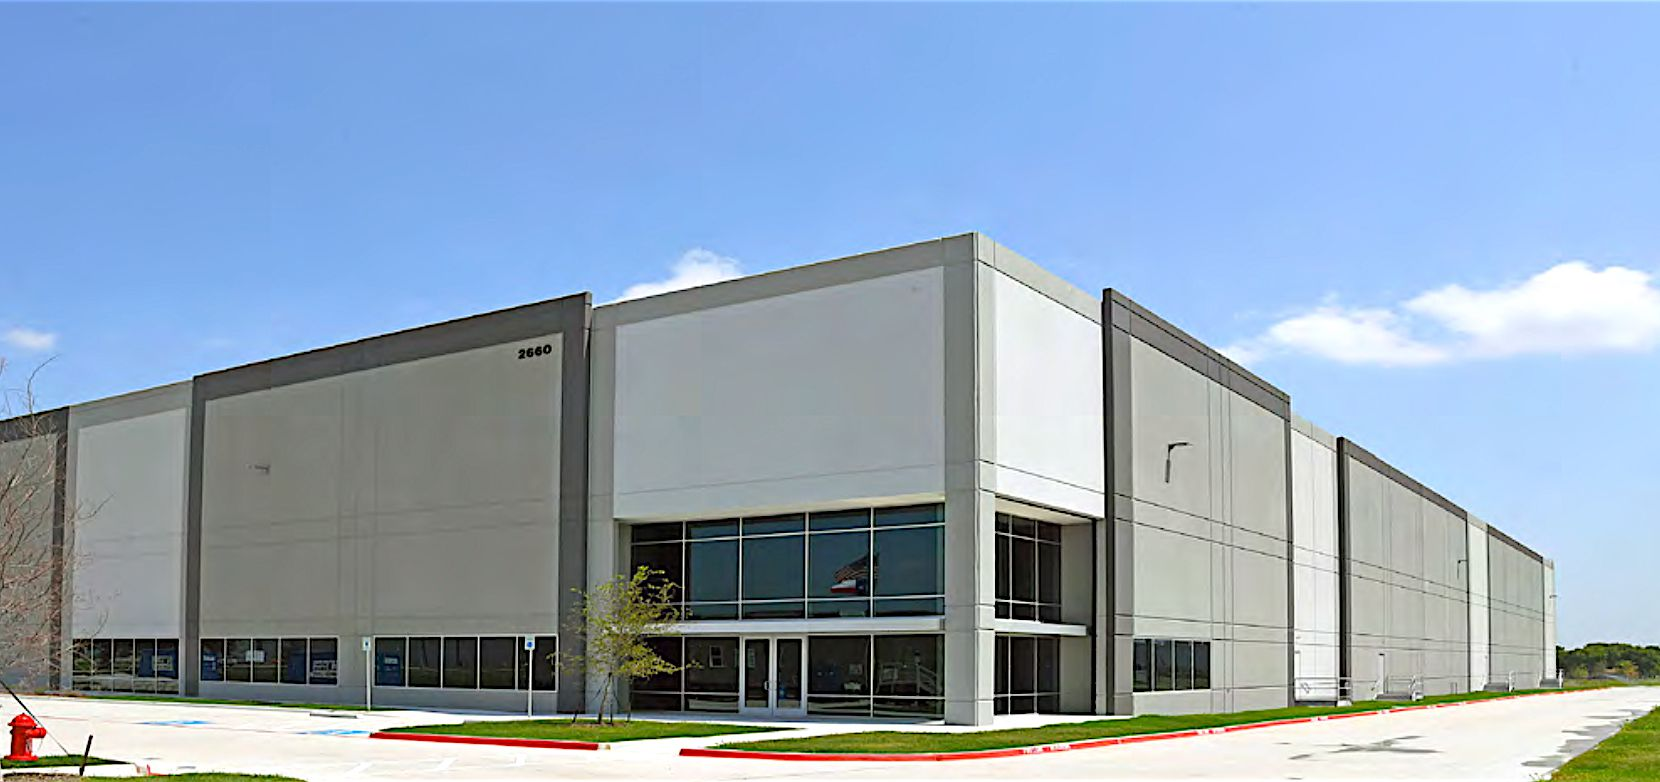 Speedway Logistics Crossing is off S.H. 114 in North Fort Worth.